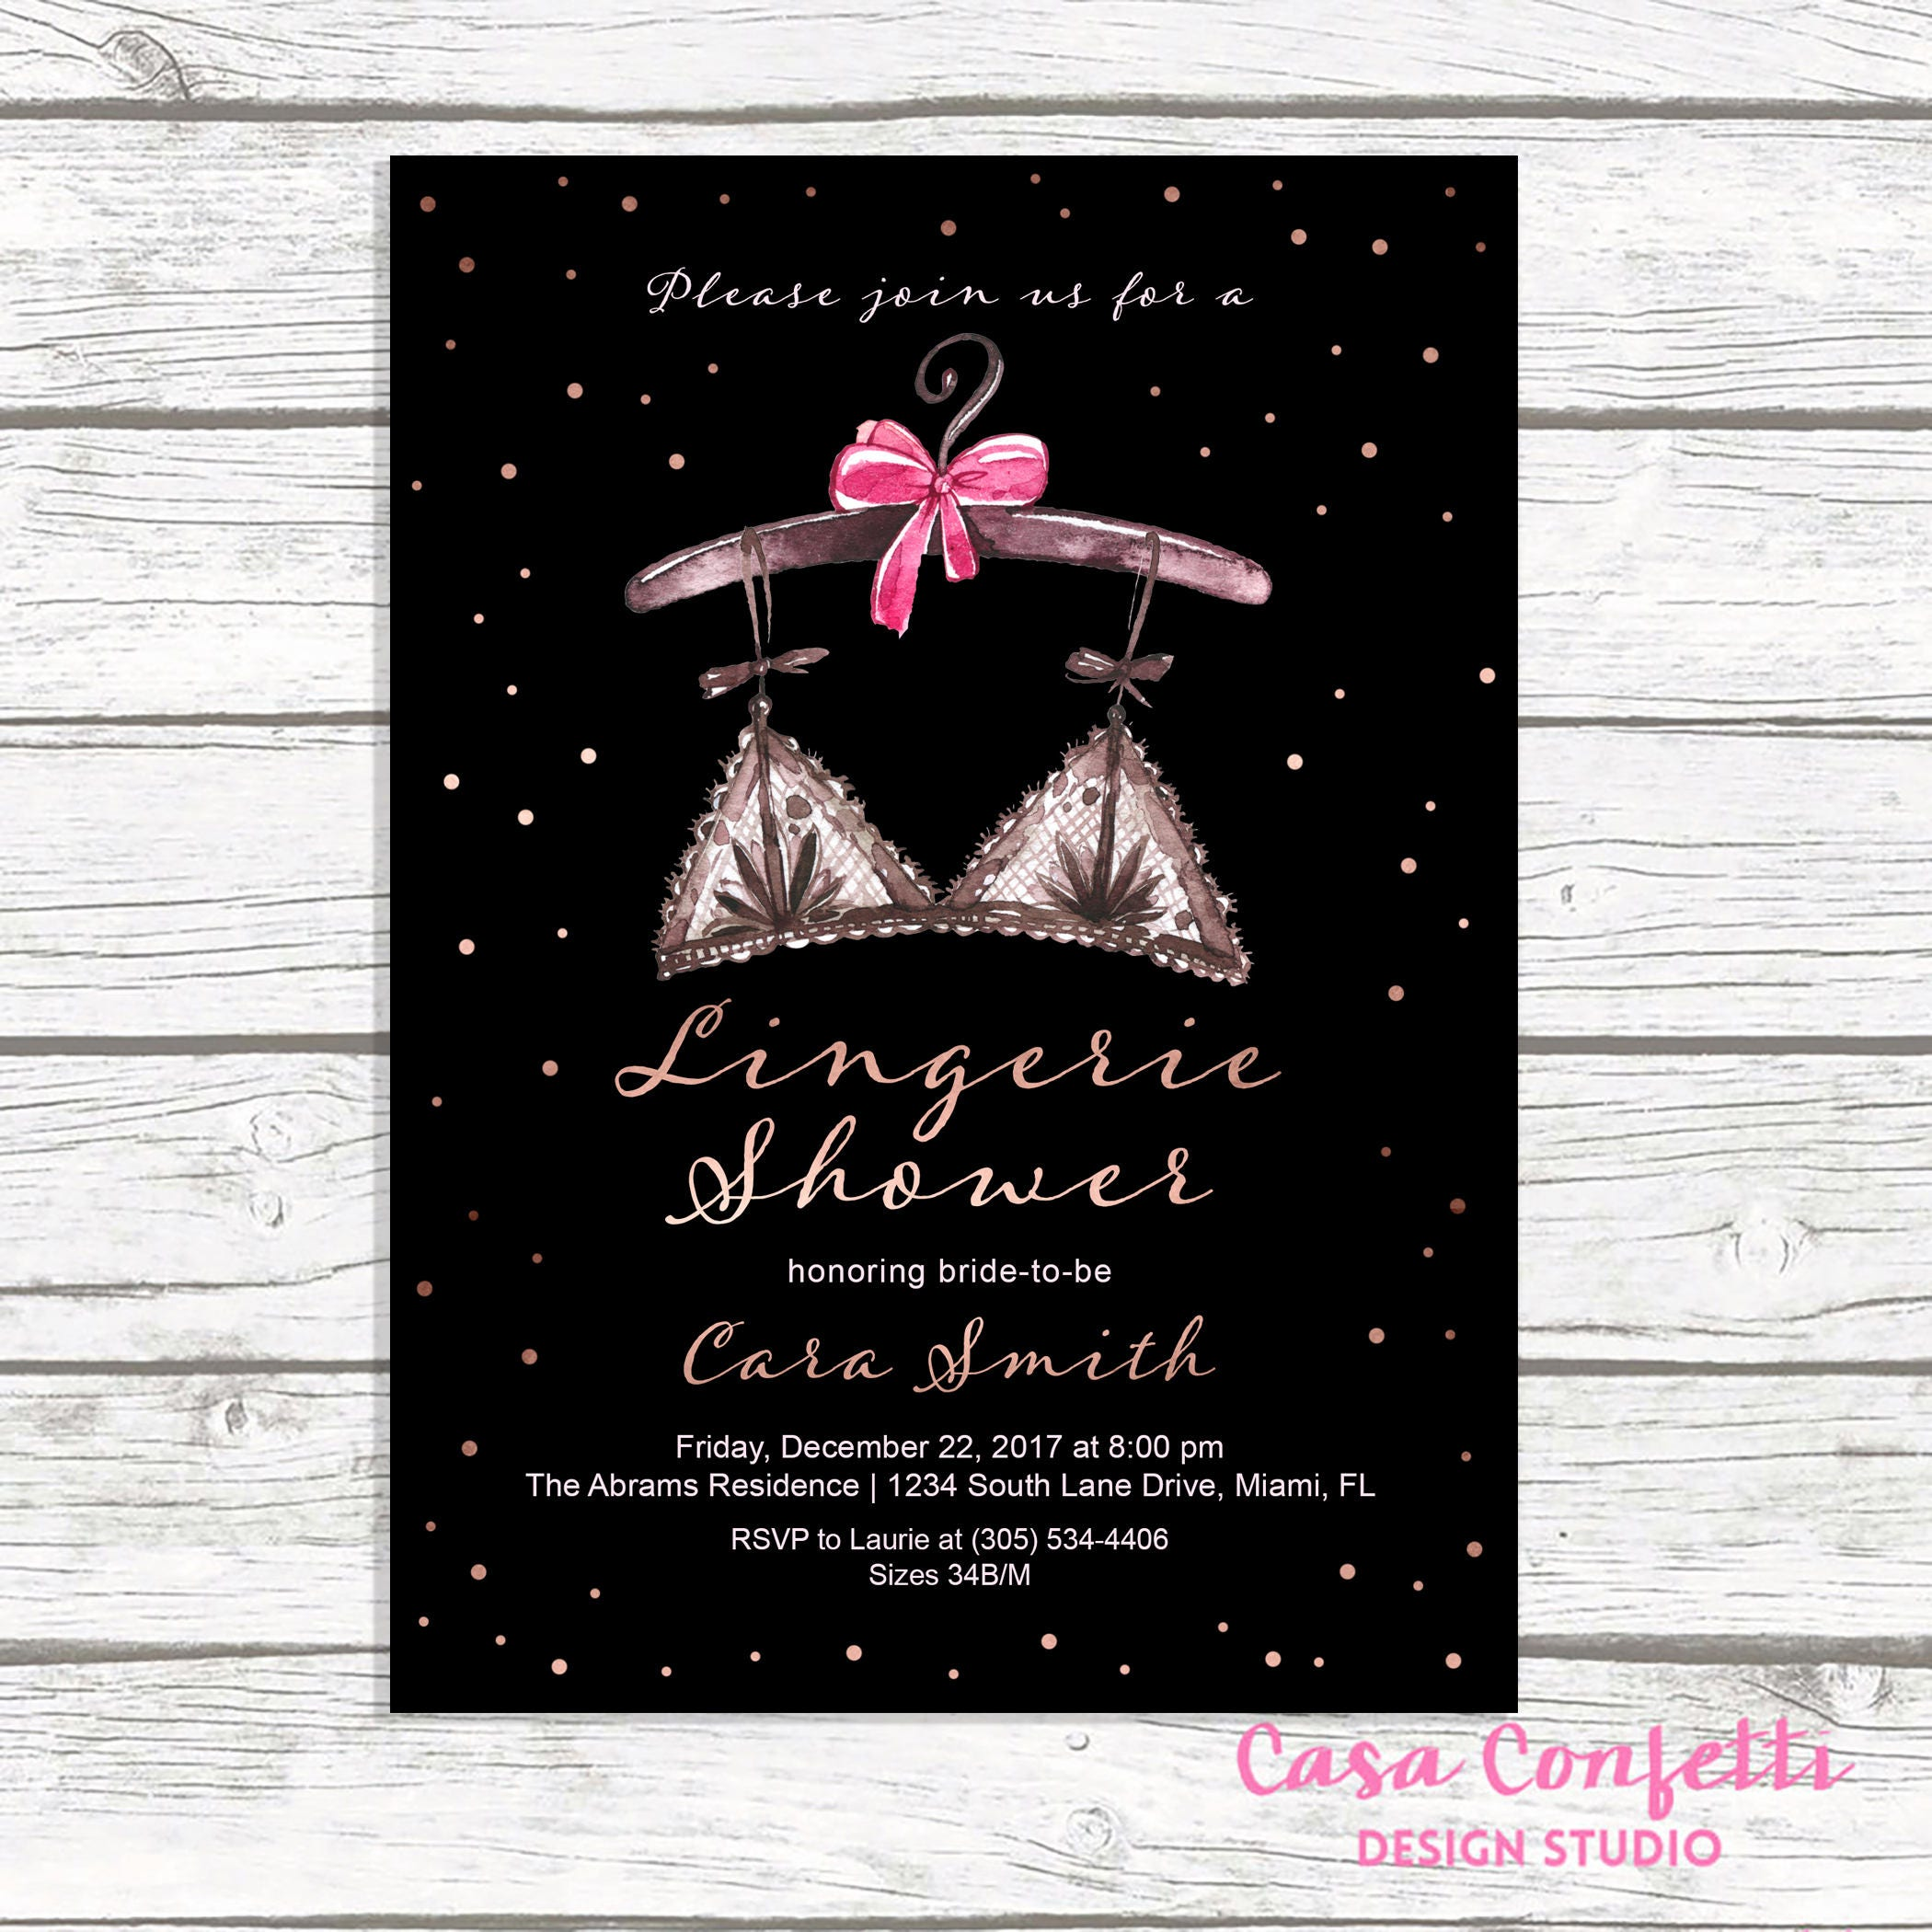 lingerie shower invitation lingerie bridal shower invitation rose gold bridal shower invitation ooh la la lingerie shower printable